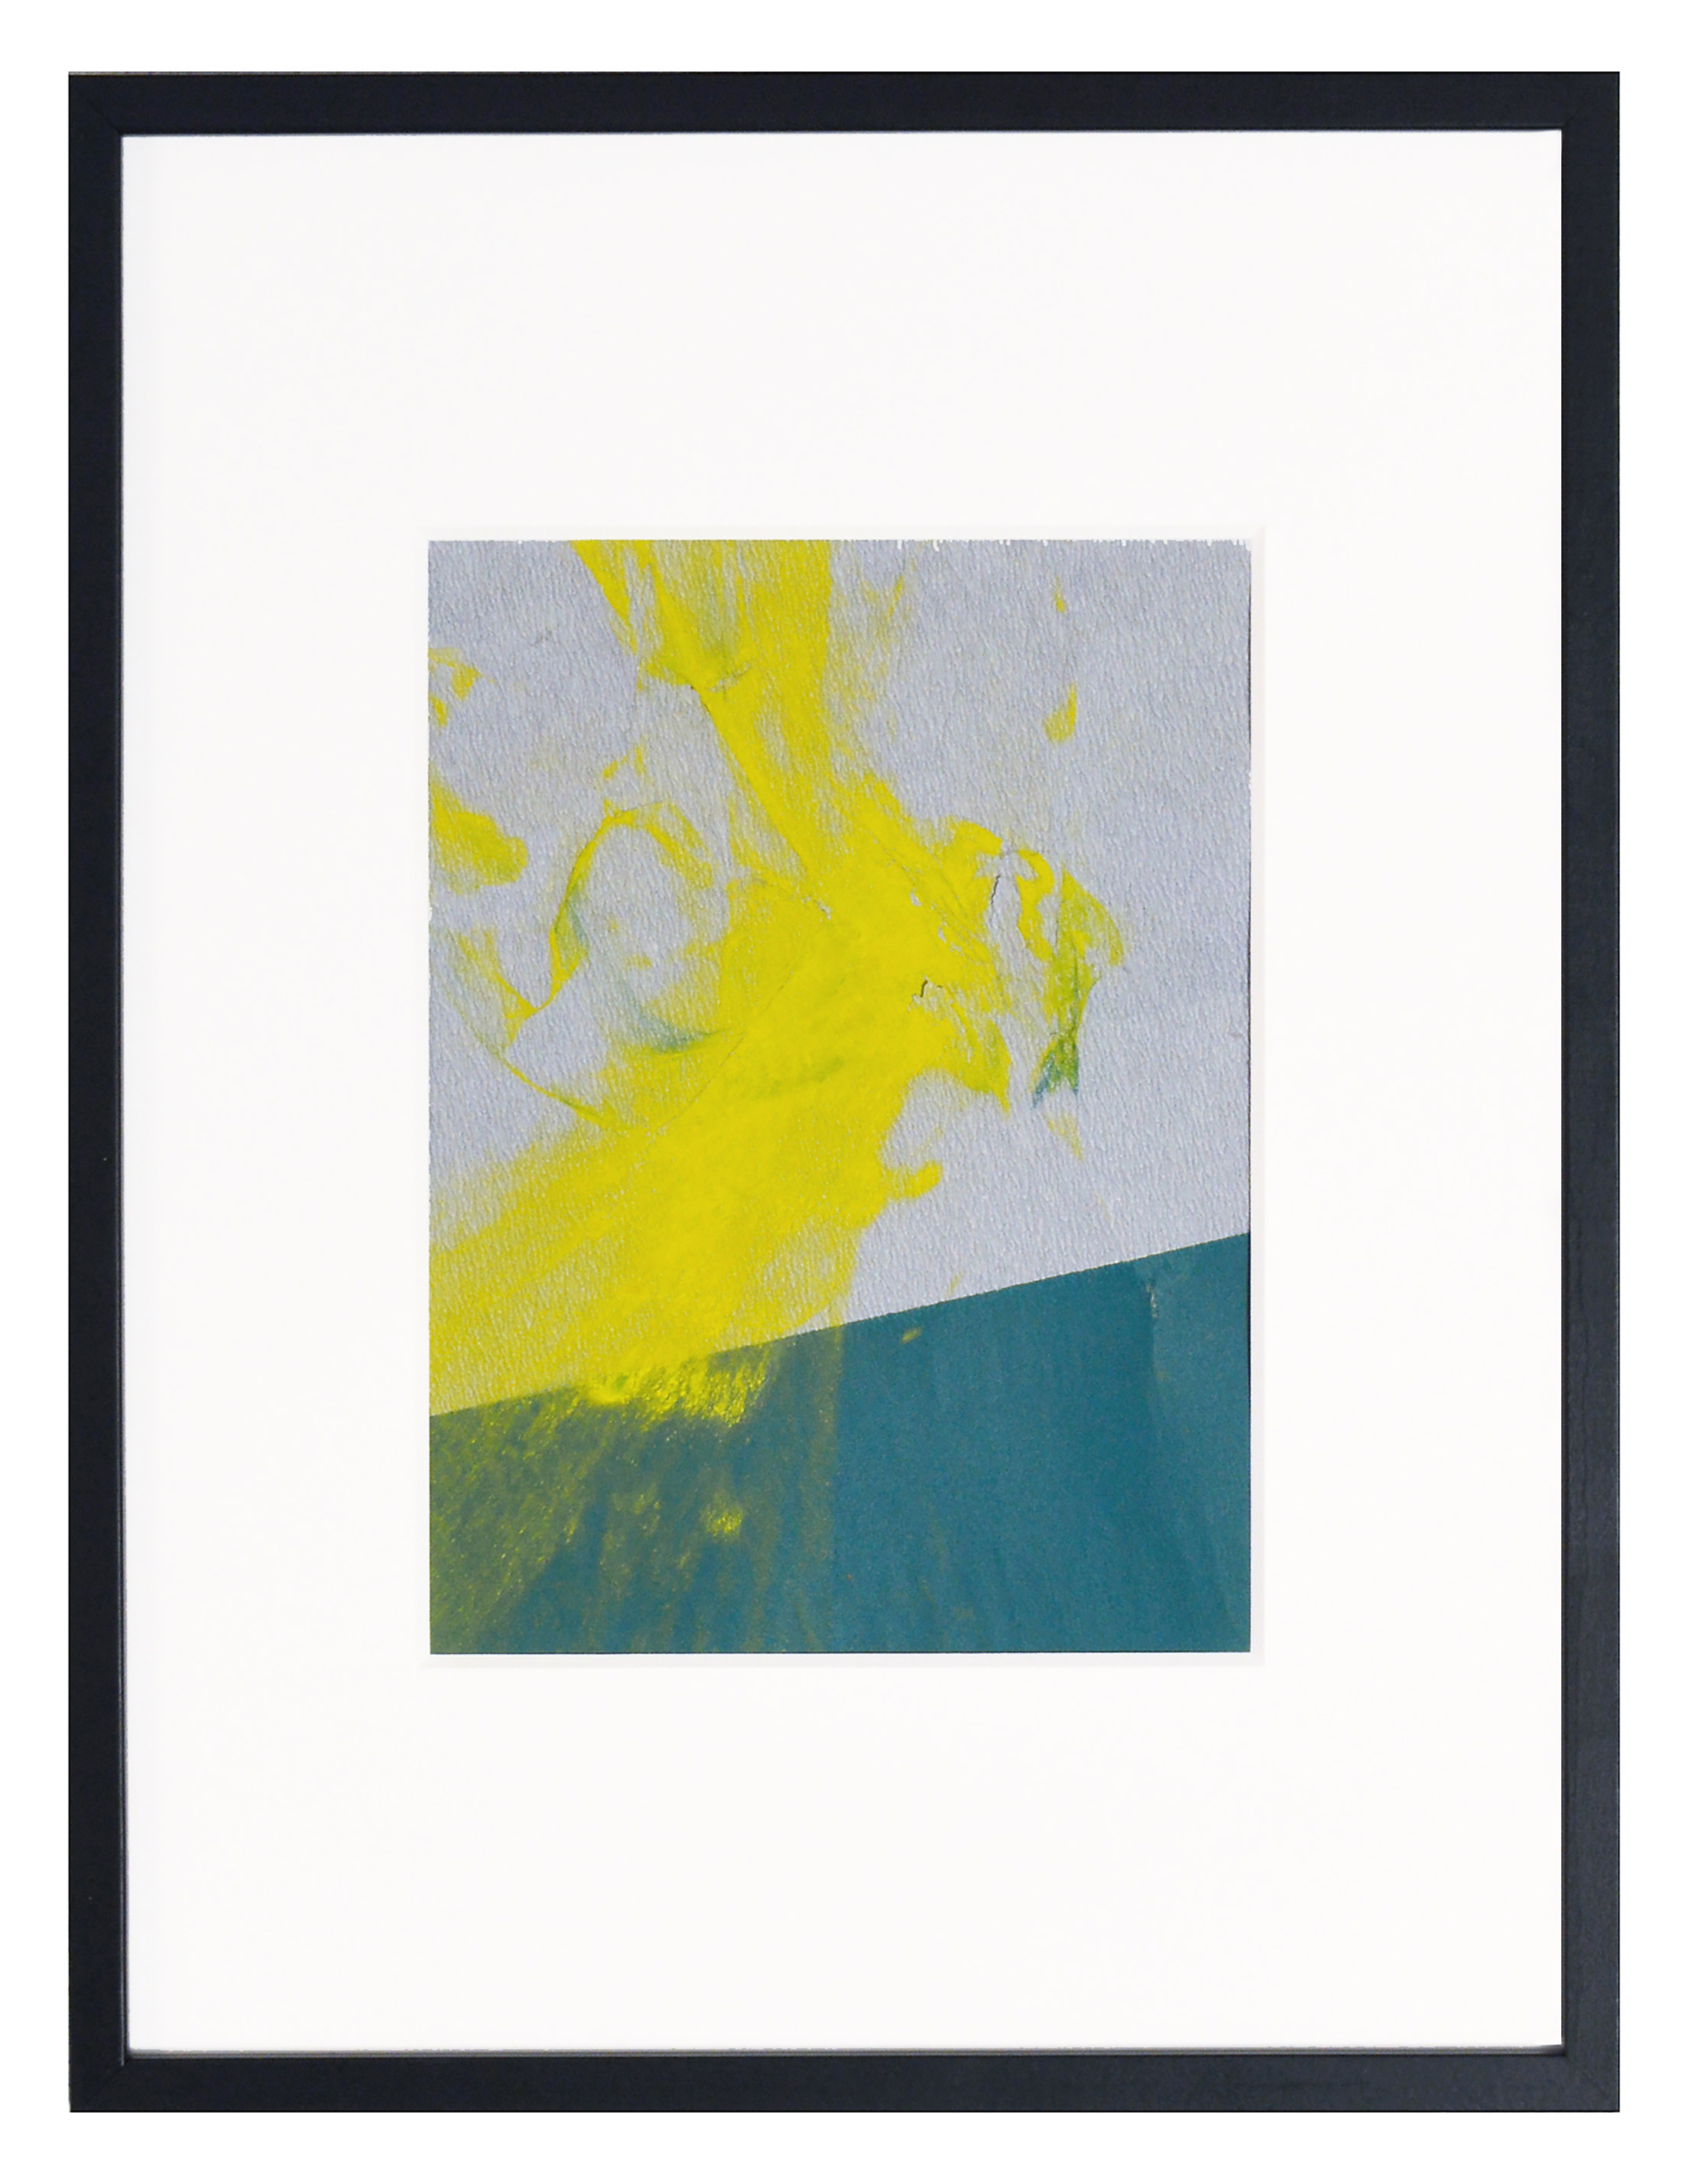 emanuel ehgartner, contemporary art, sandpaper, mixed medium, color, framed art to buy online